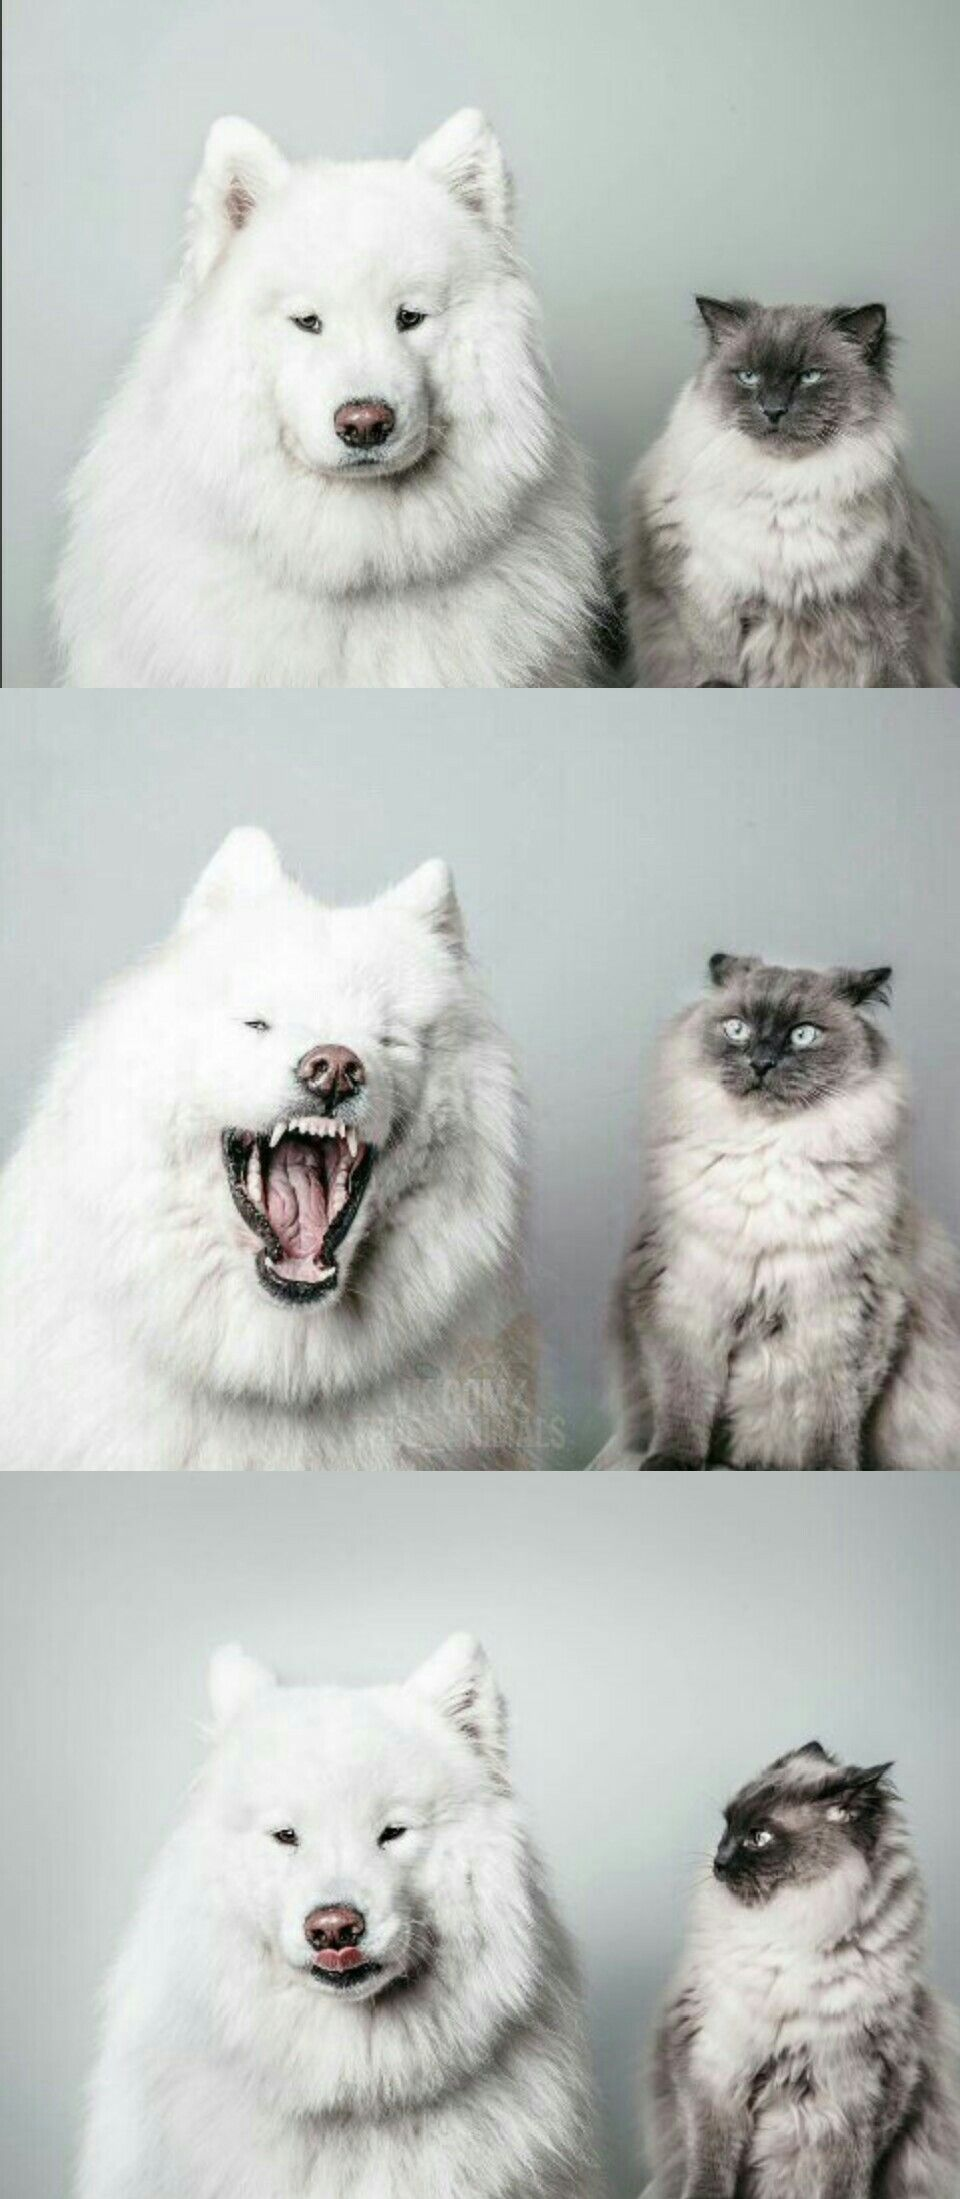 High Quality bad joke dog cat Blank Meme Template